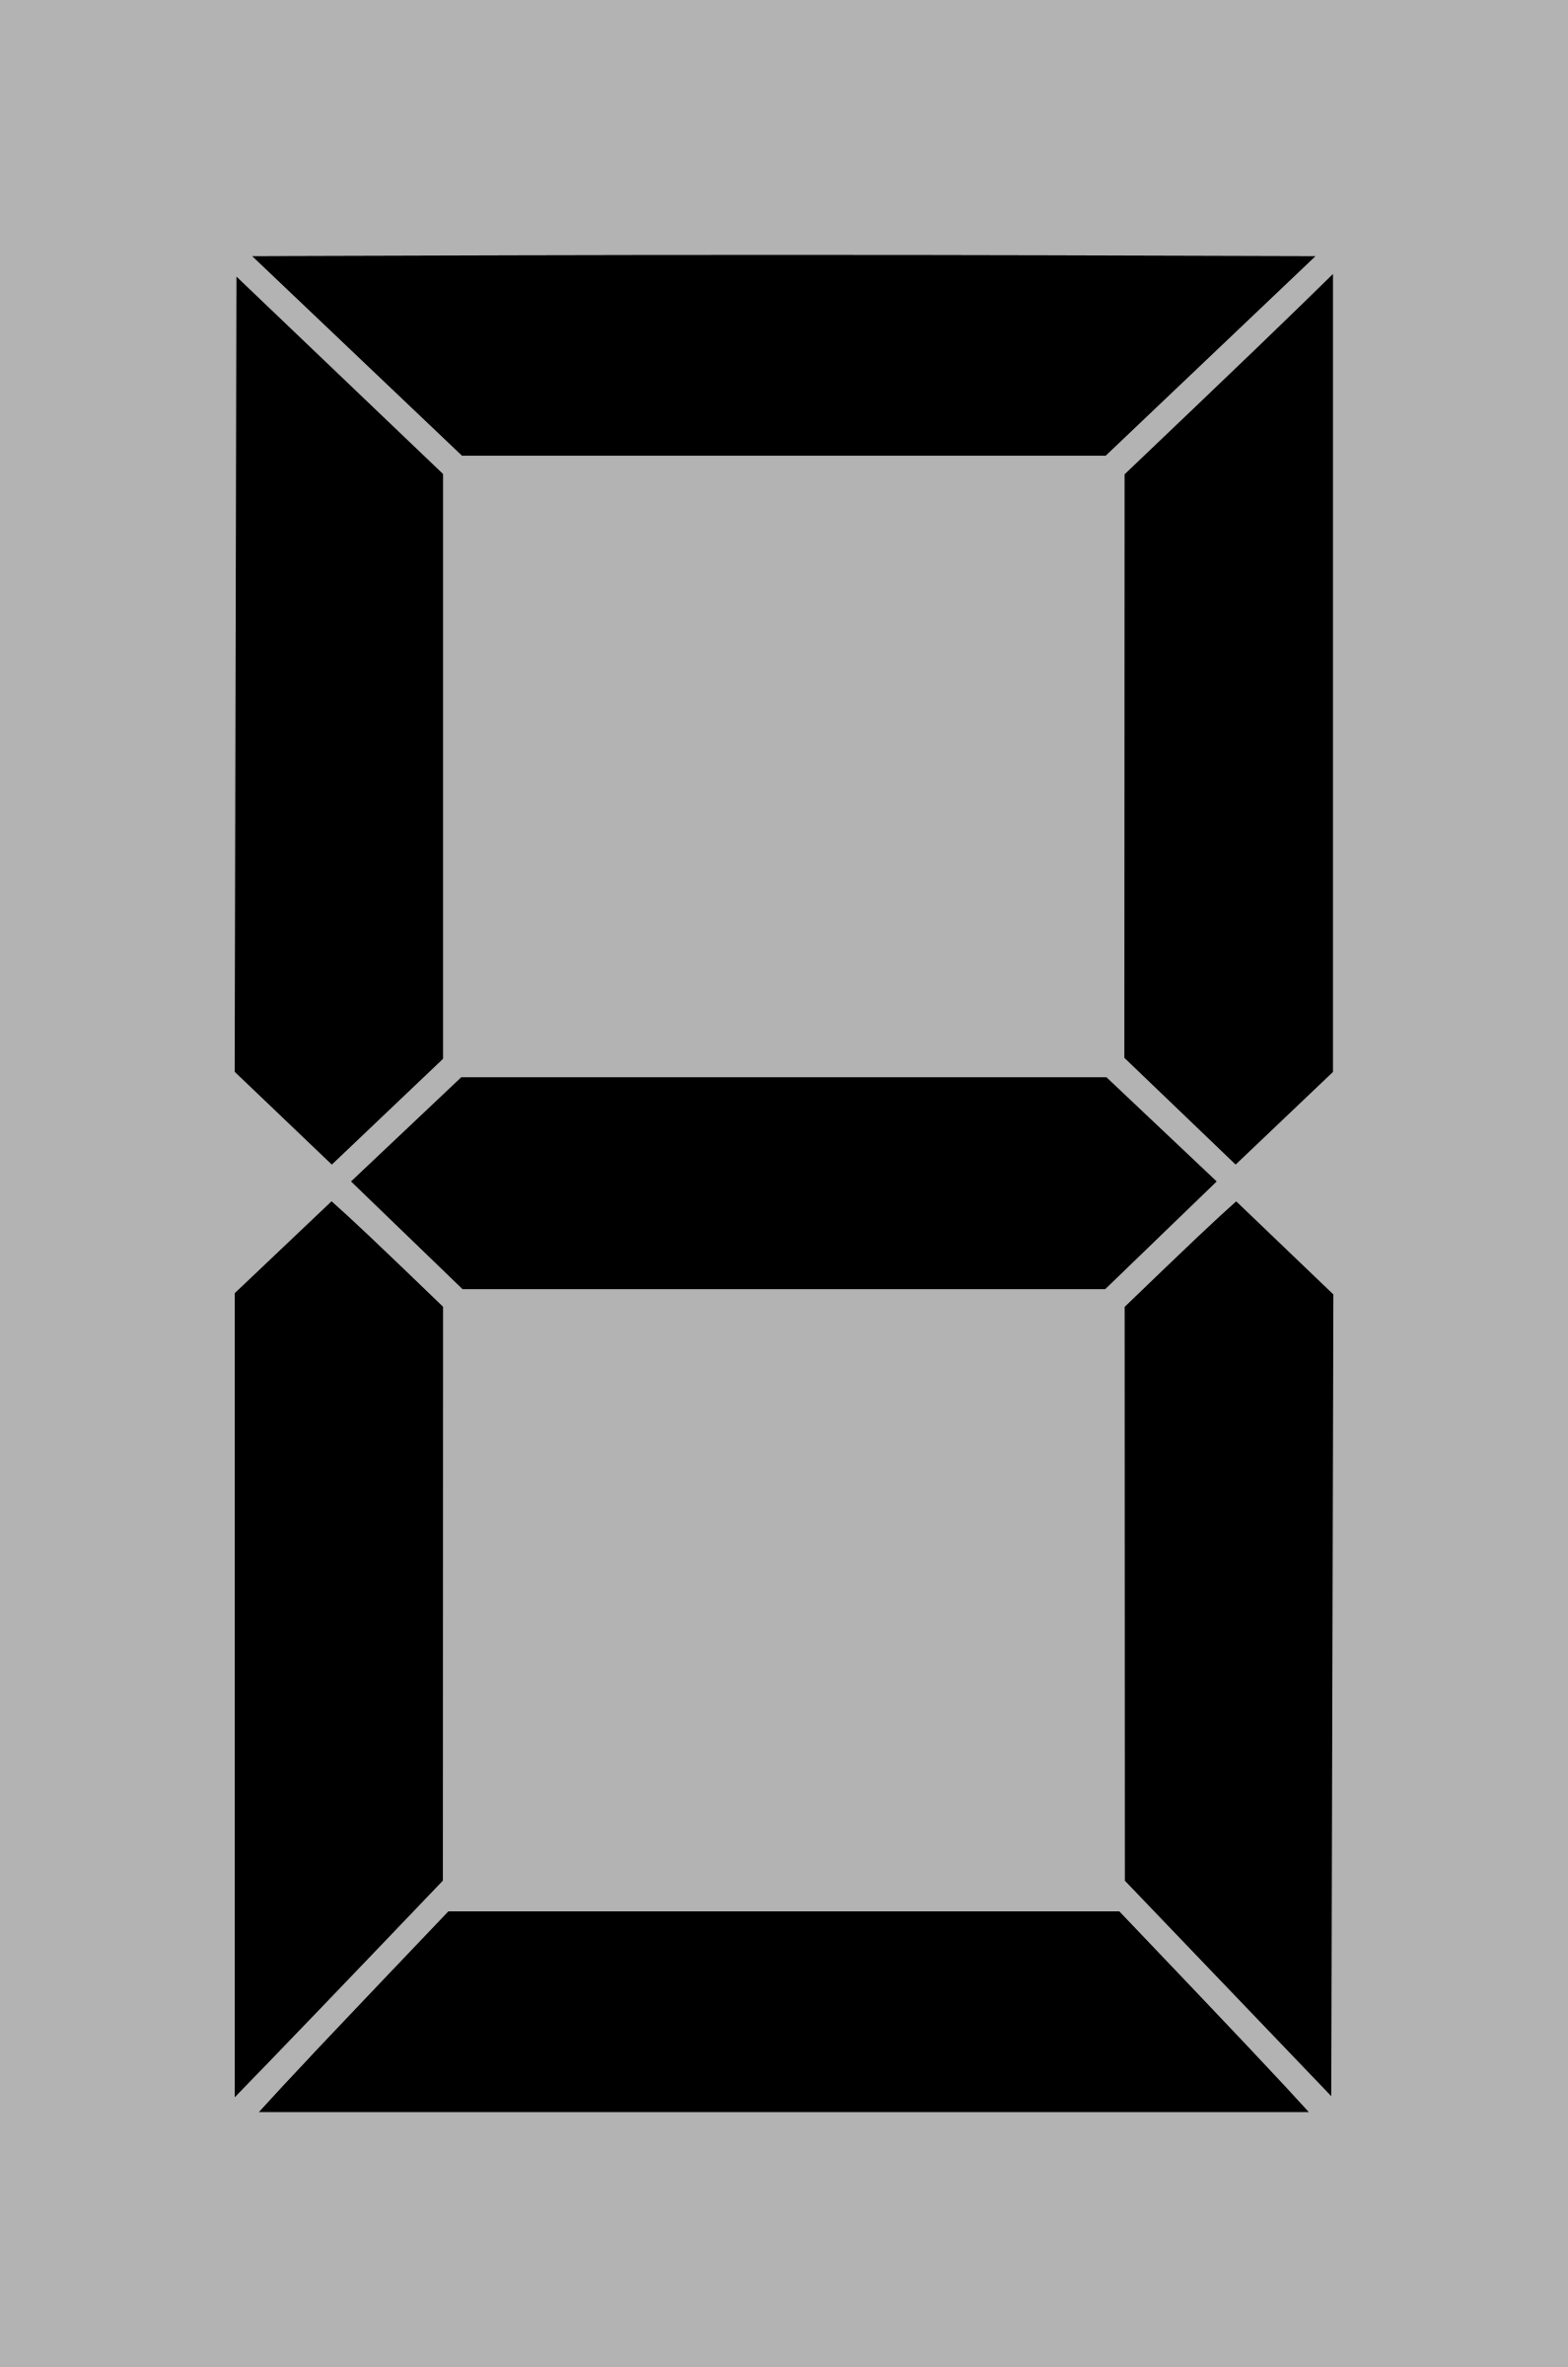 Seven segment display gray 8 by alex8664